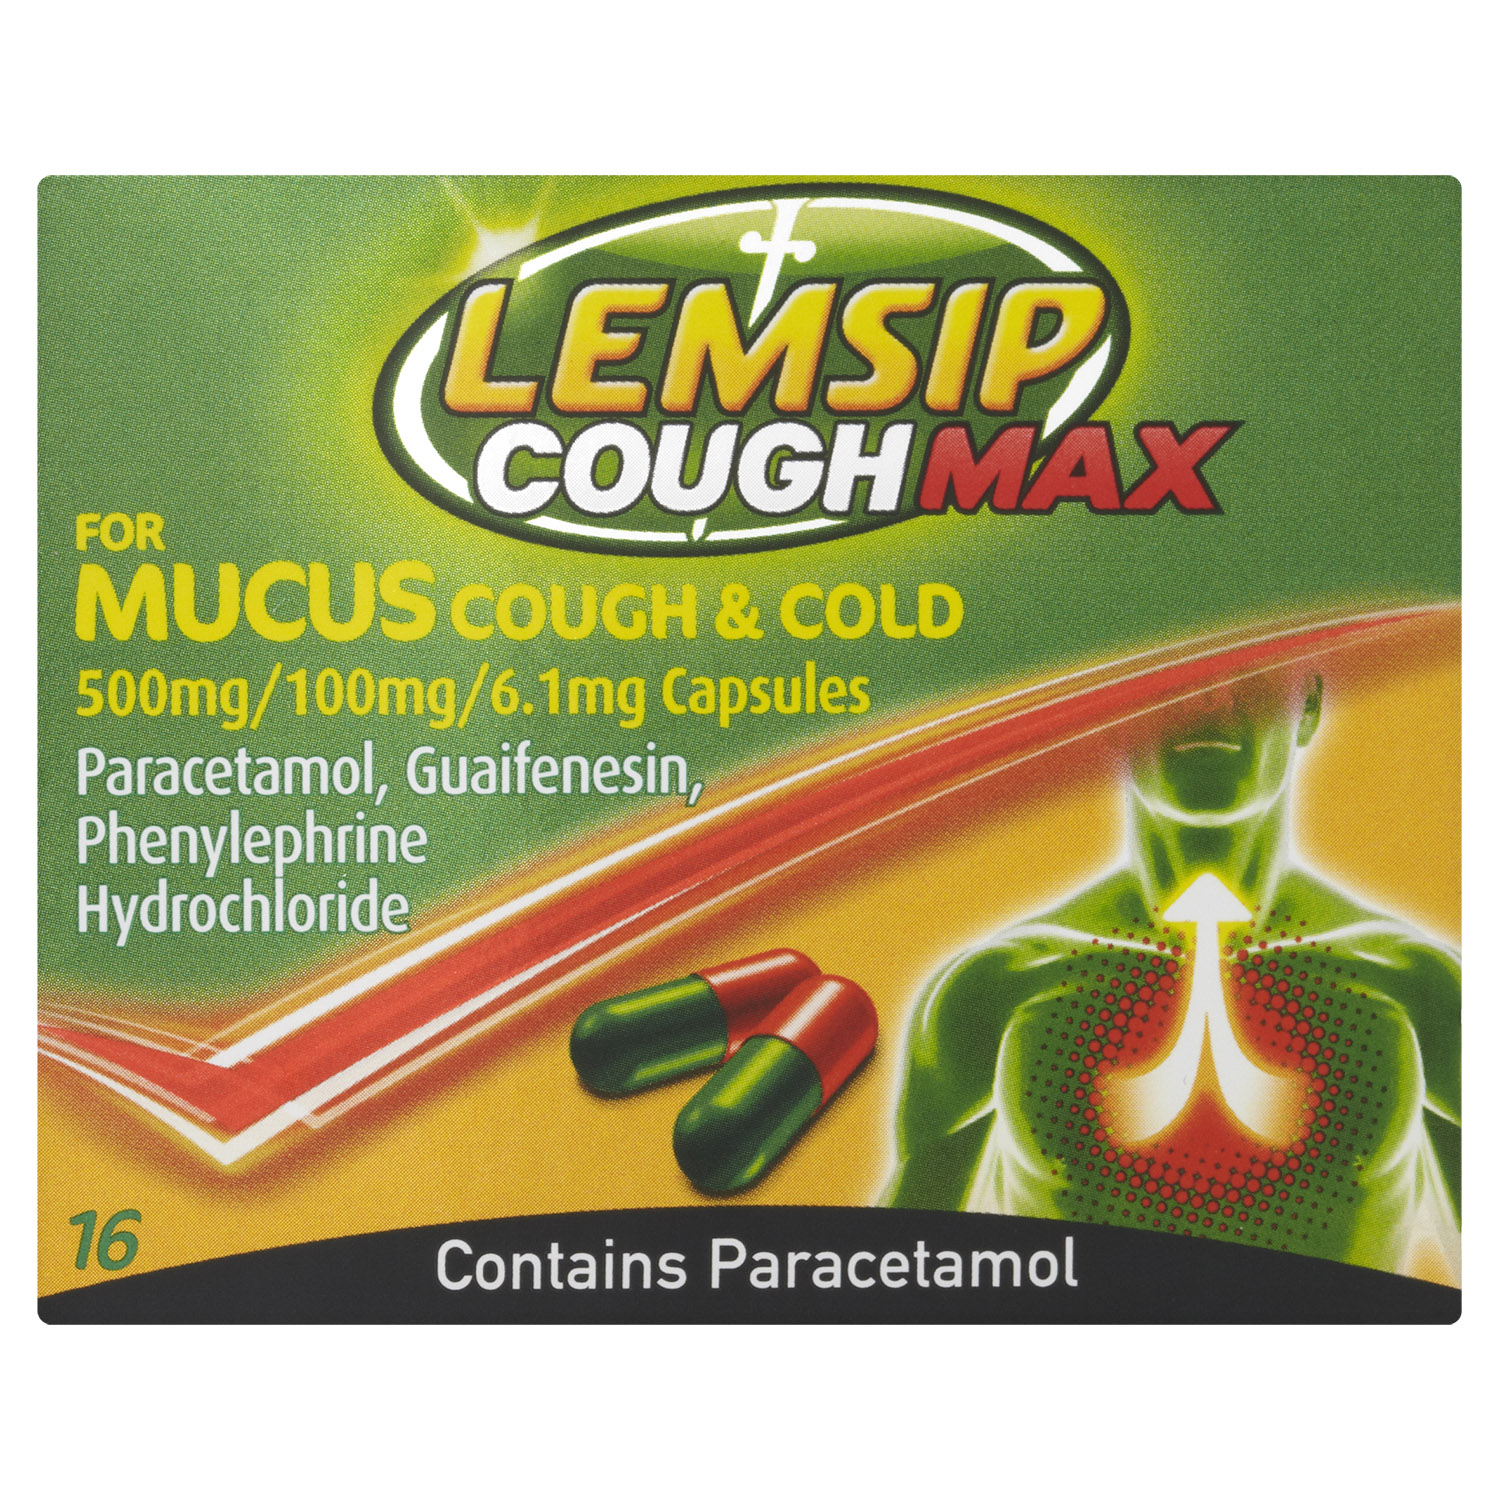 Lemsip Cough Max Mucus Cough + Cold Capsules 16s